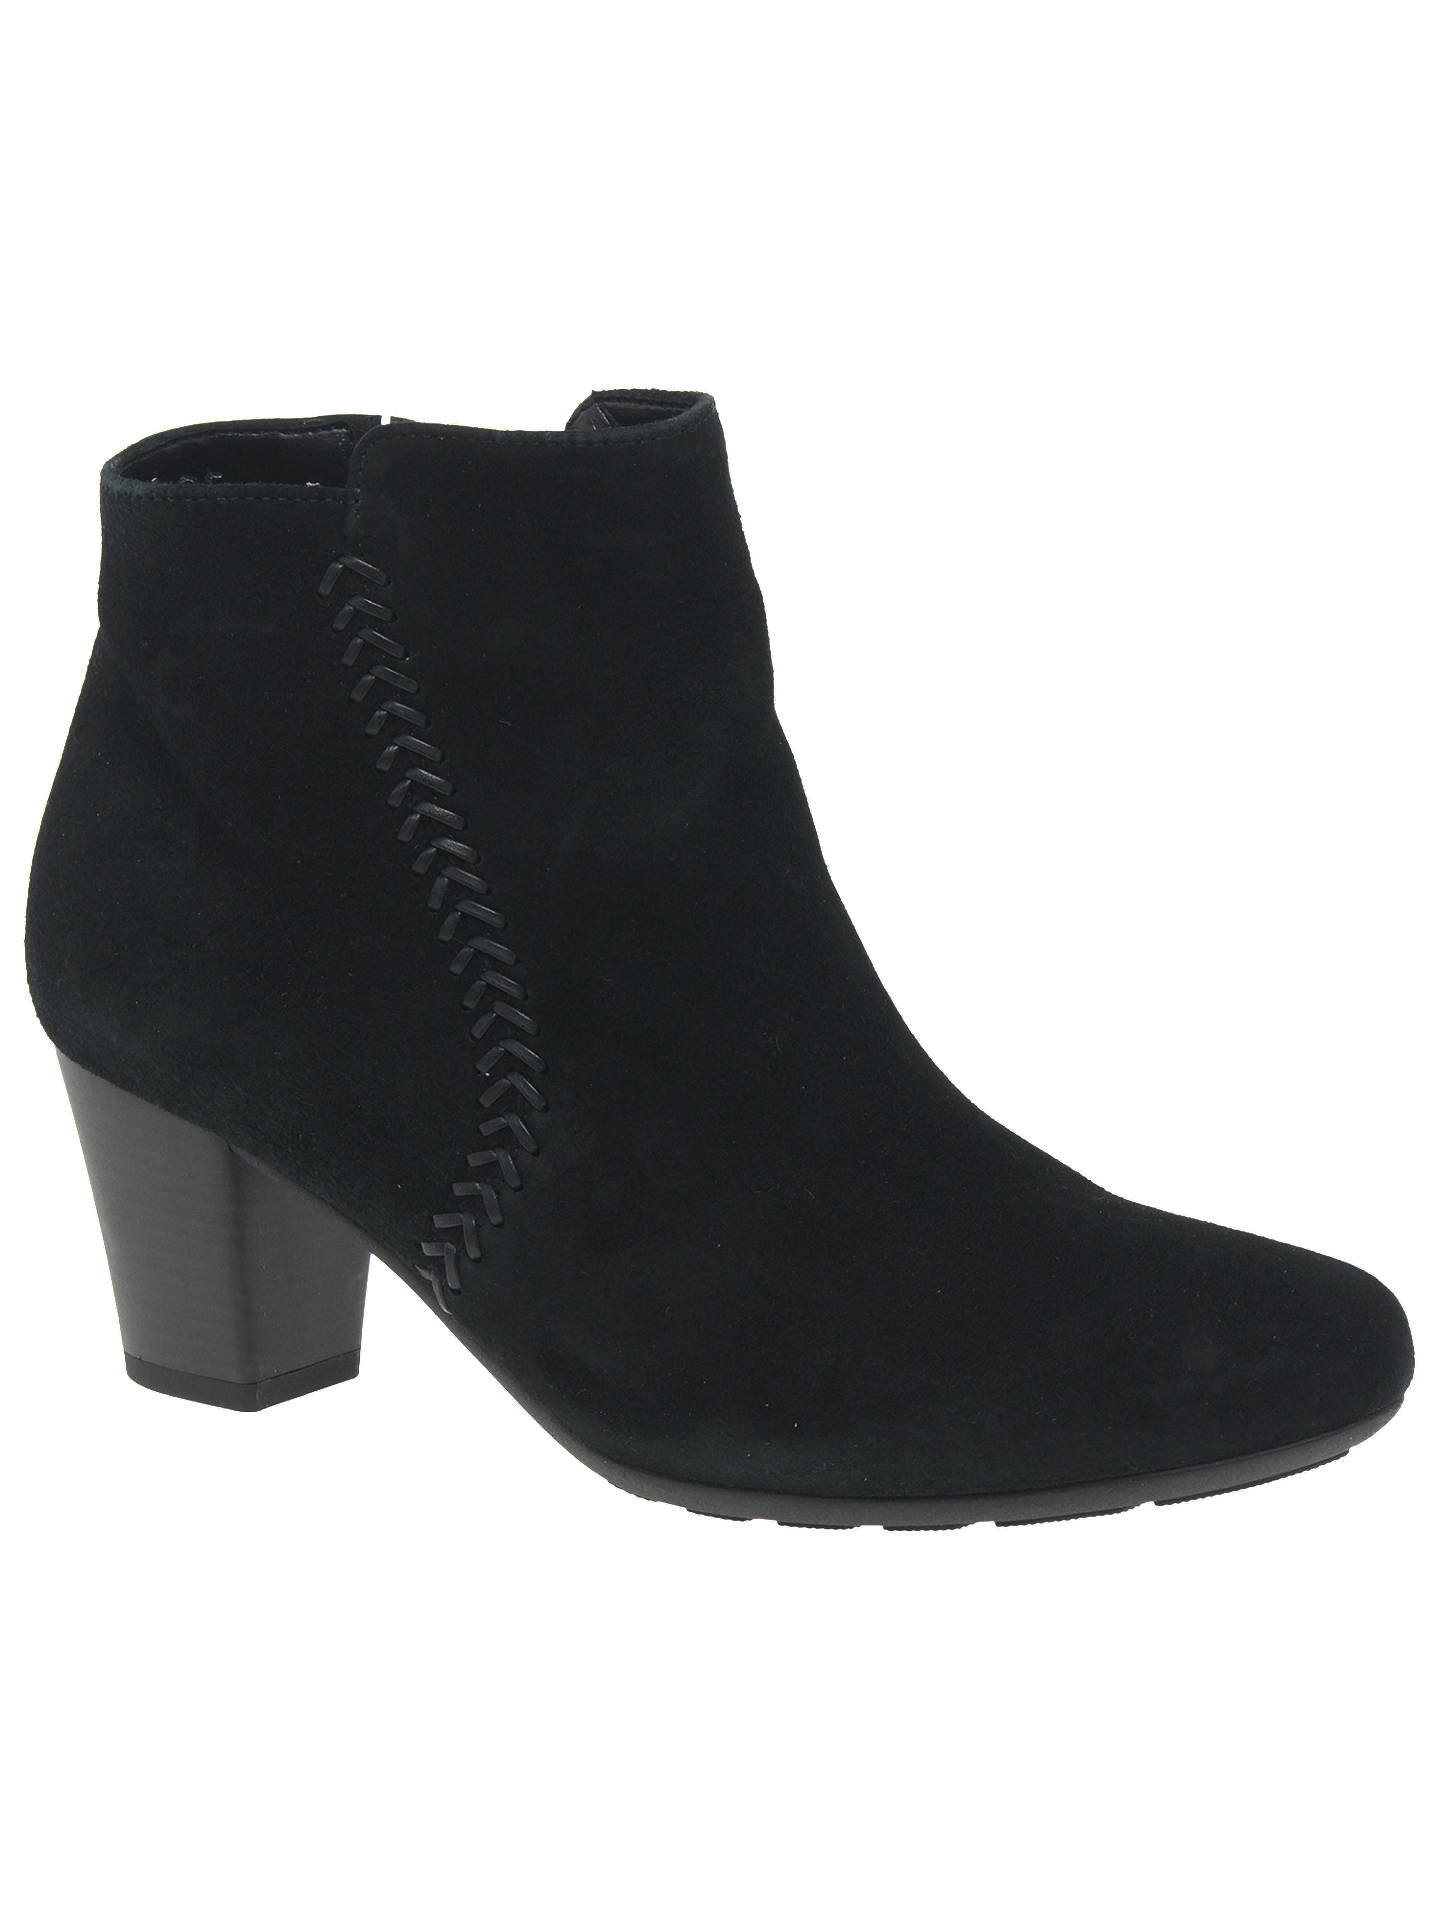 cheaper exceptional range of styles and colors the best Gabor Lydgate Extra Wide Fit Ankle Boots, Black at John ...